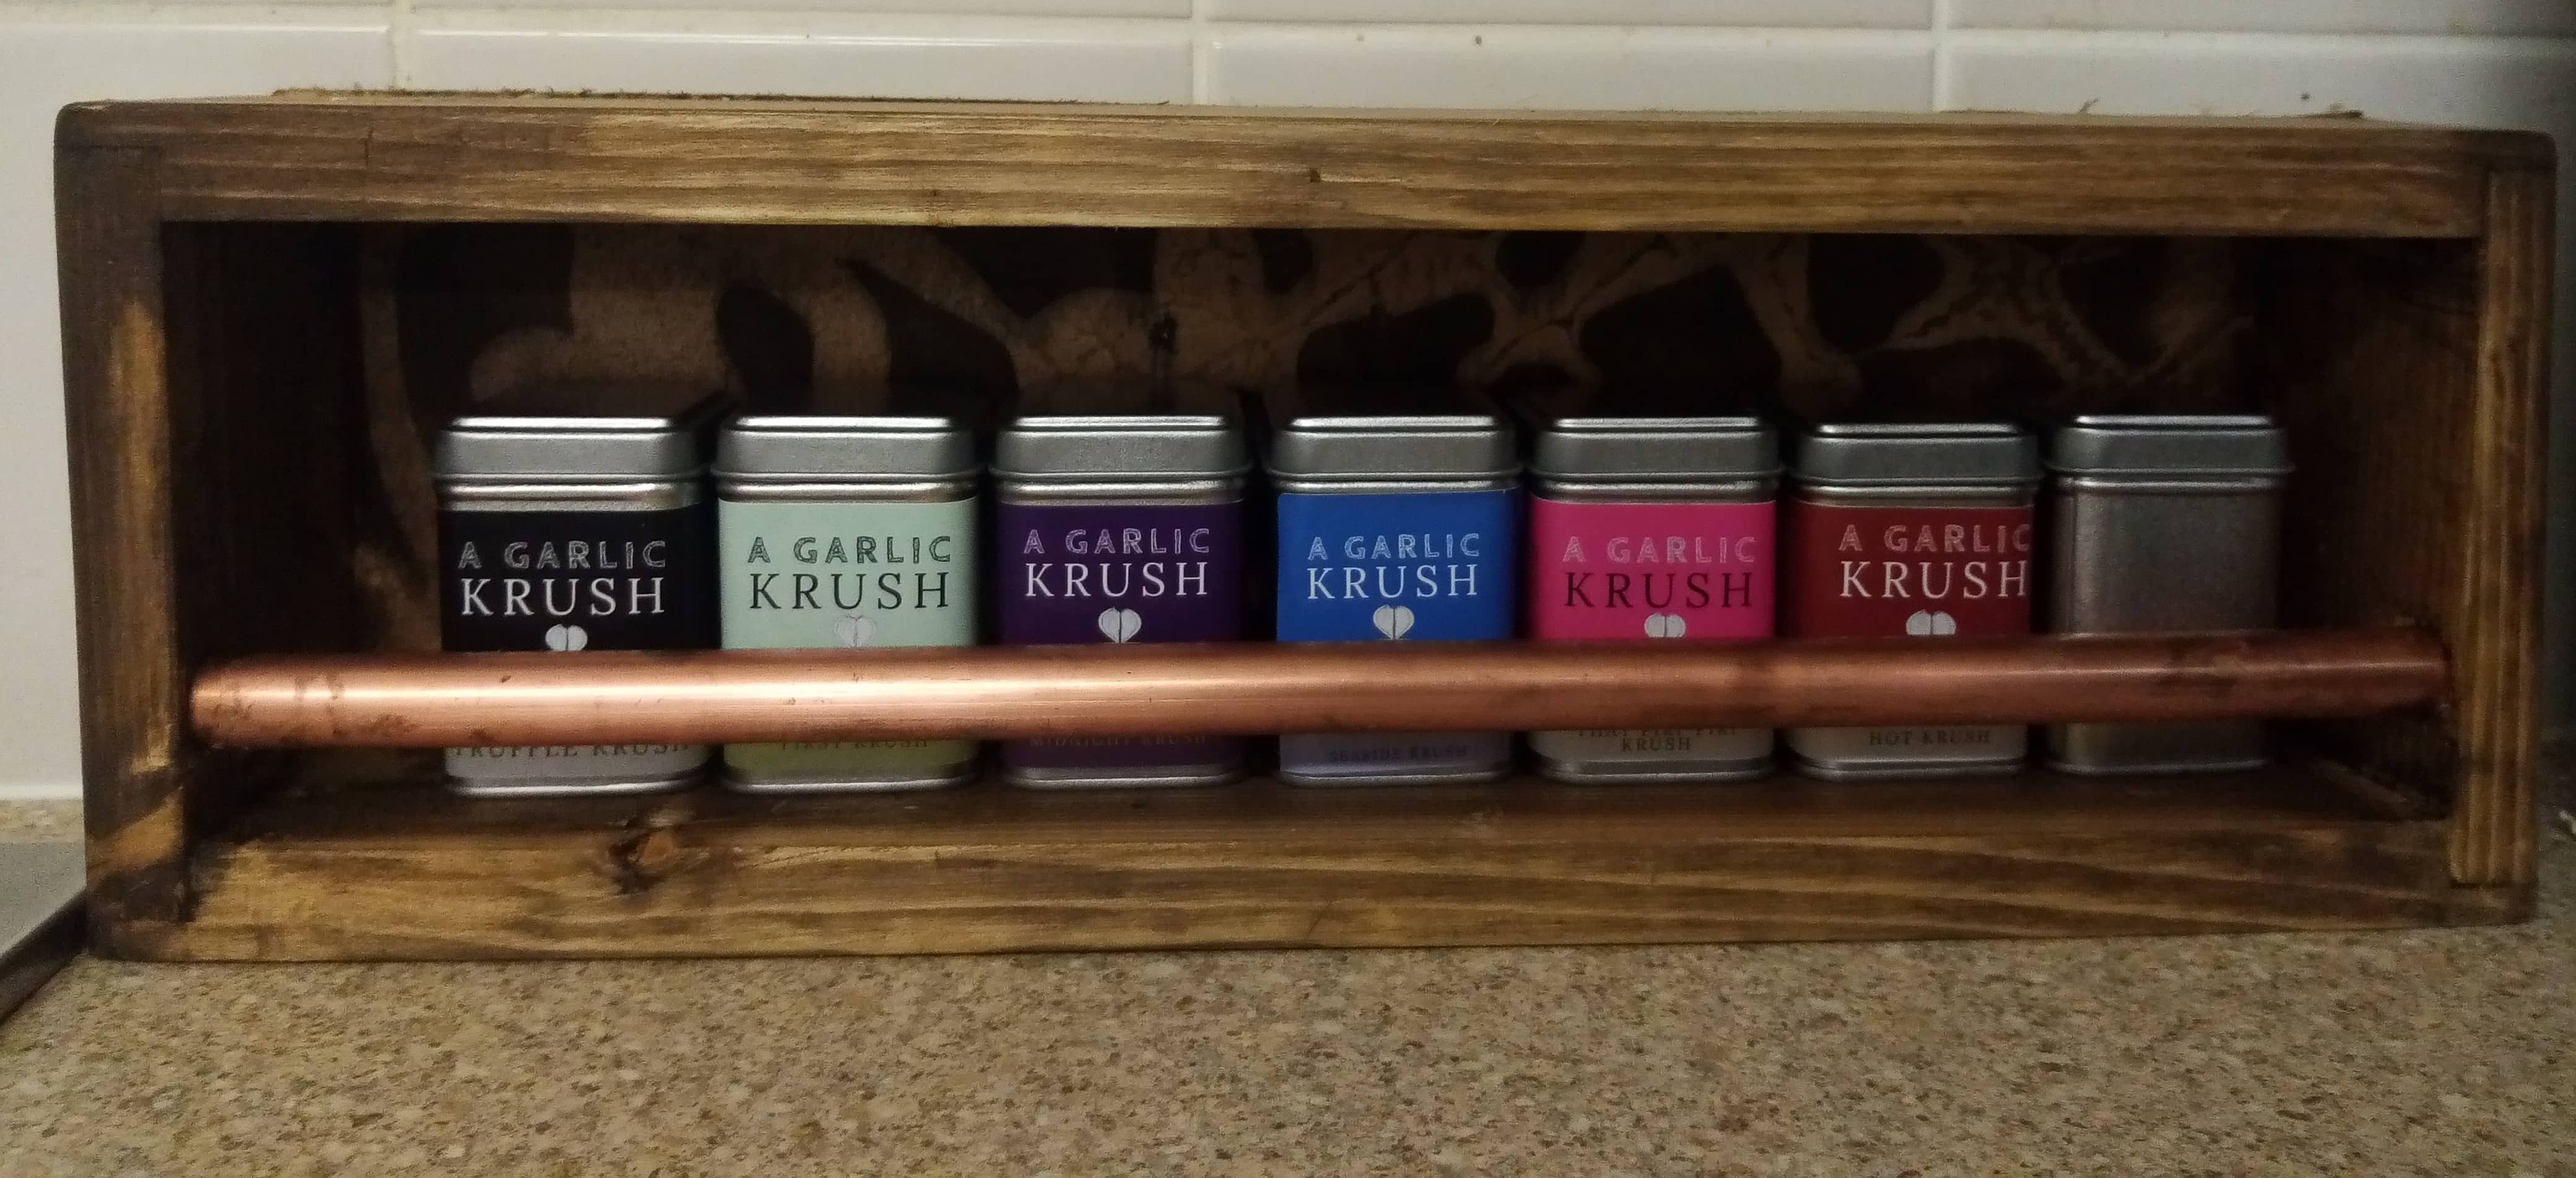 Garlic Krush spice rack set